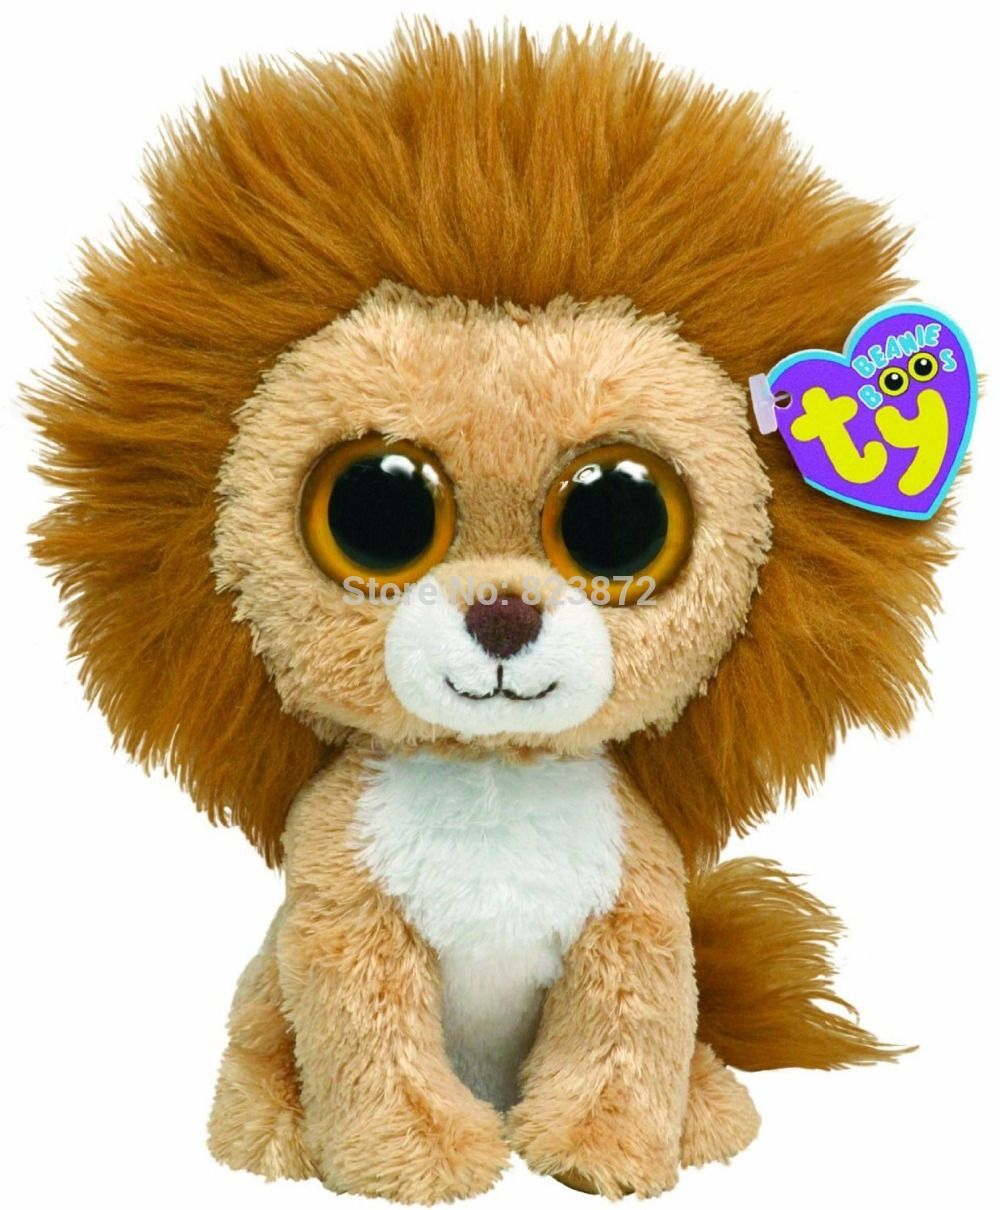 TY Plush Animals Beanie Boos King the Lion Plush Toys 6   15cm TY Big Eyes  Soft Toys Brinquedos Kids Toys for Children Gifts 9f3e15768d2a